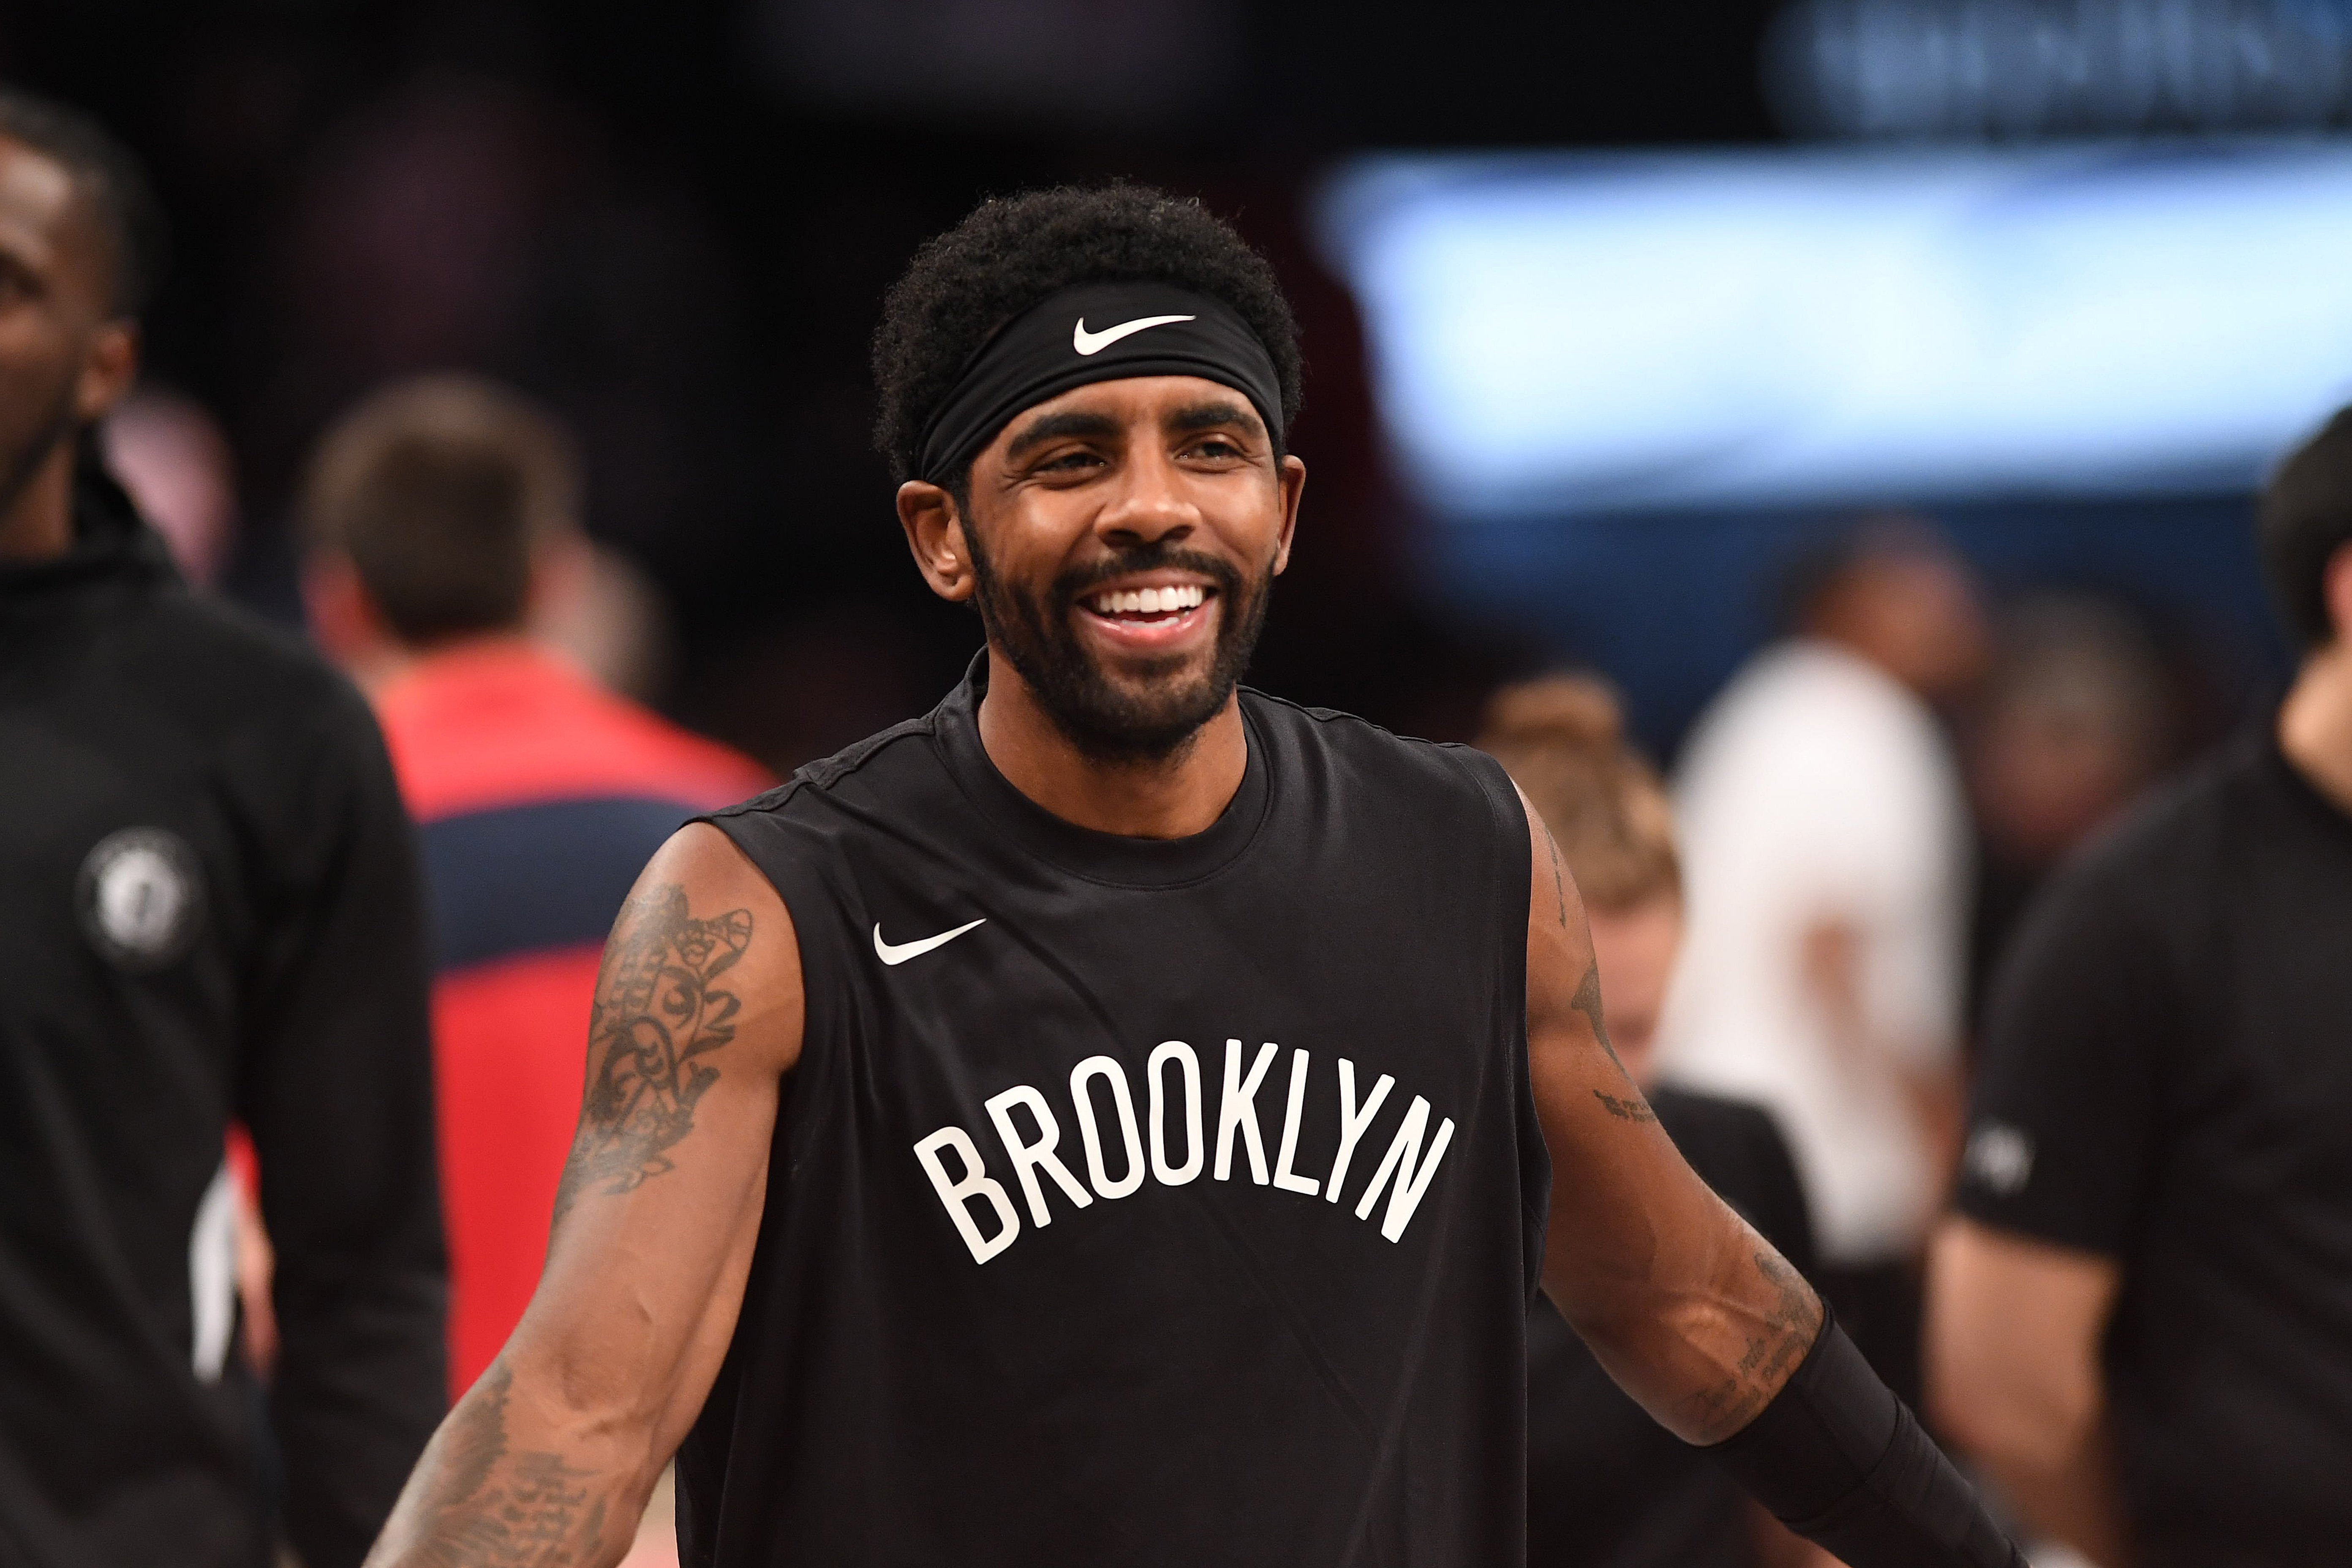 Kyrie Irving warming up before a game against the New Orleans Pelicans on November 4, 2019. | Photo: Getty Images